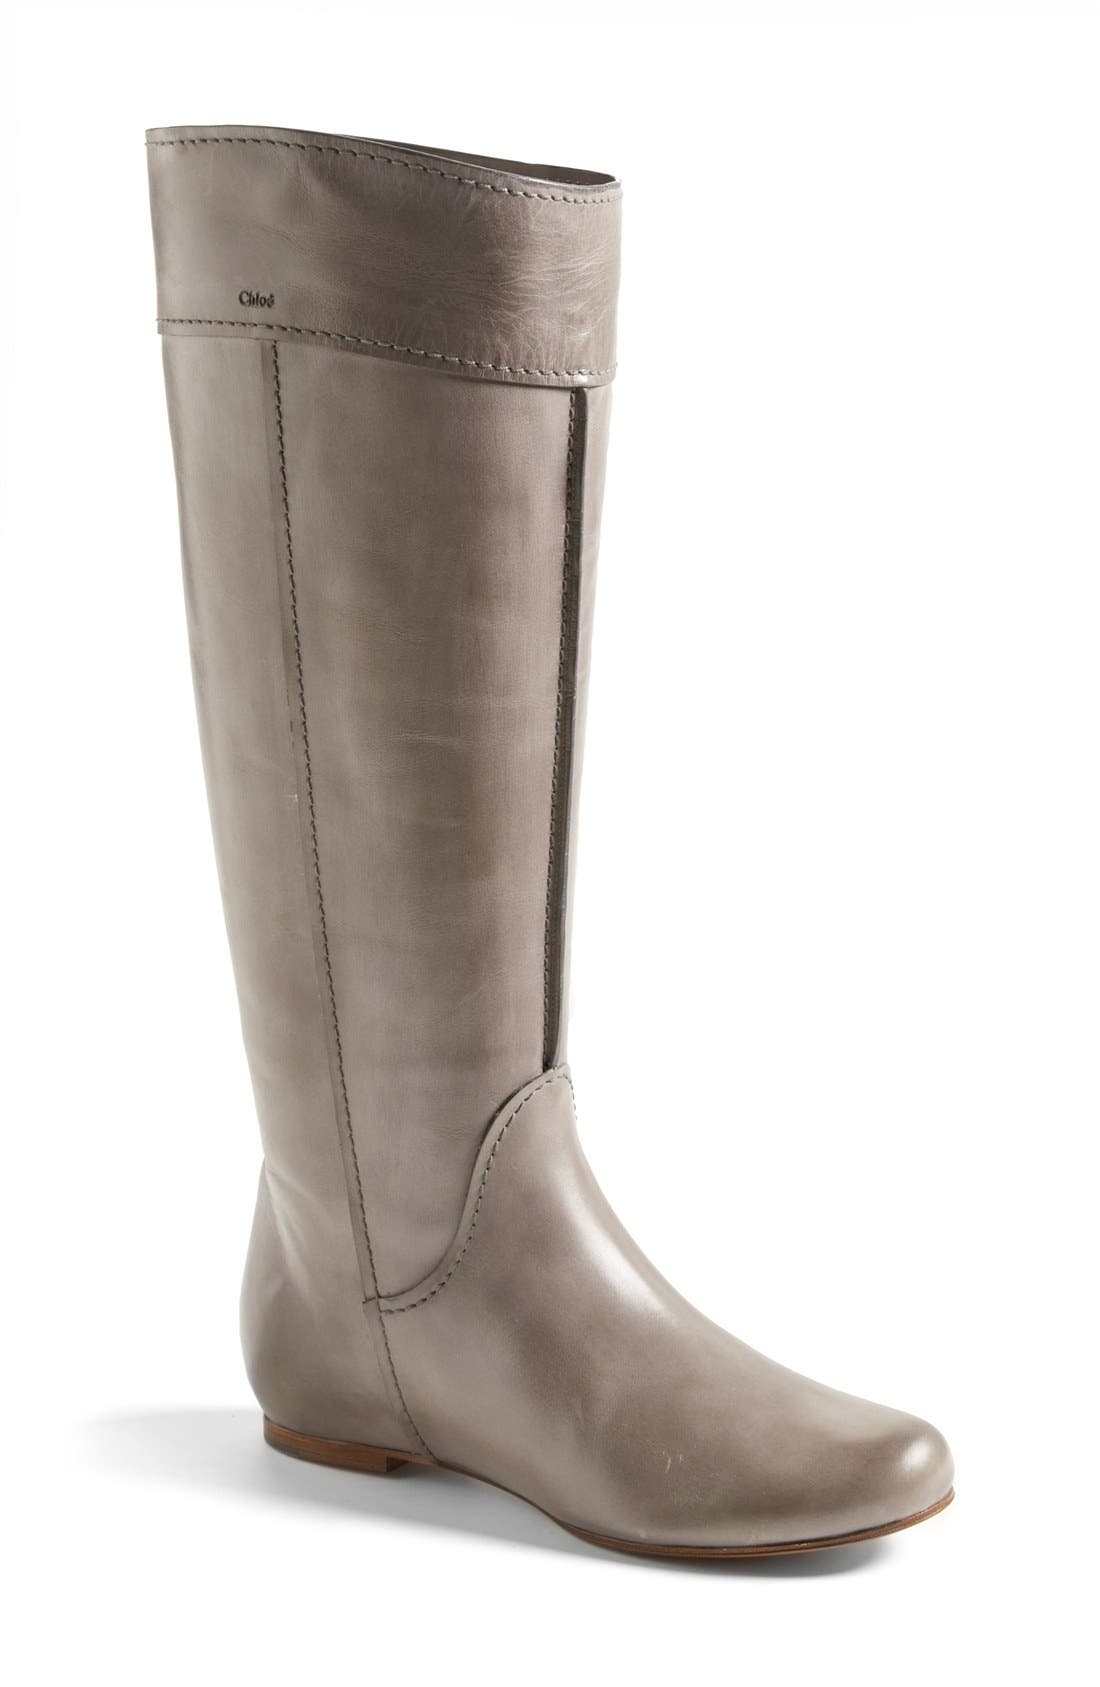 'Heloise' Tall Calfskin Leather Boot,                             Main thumbnail 1, color,                             020